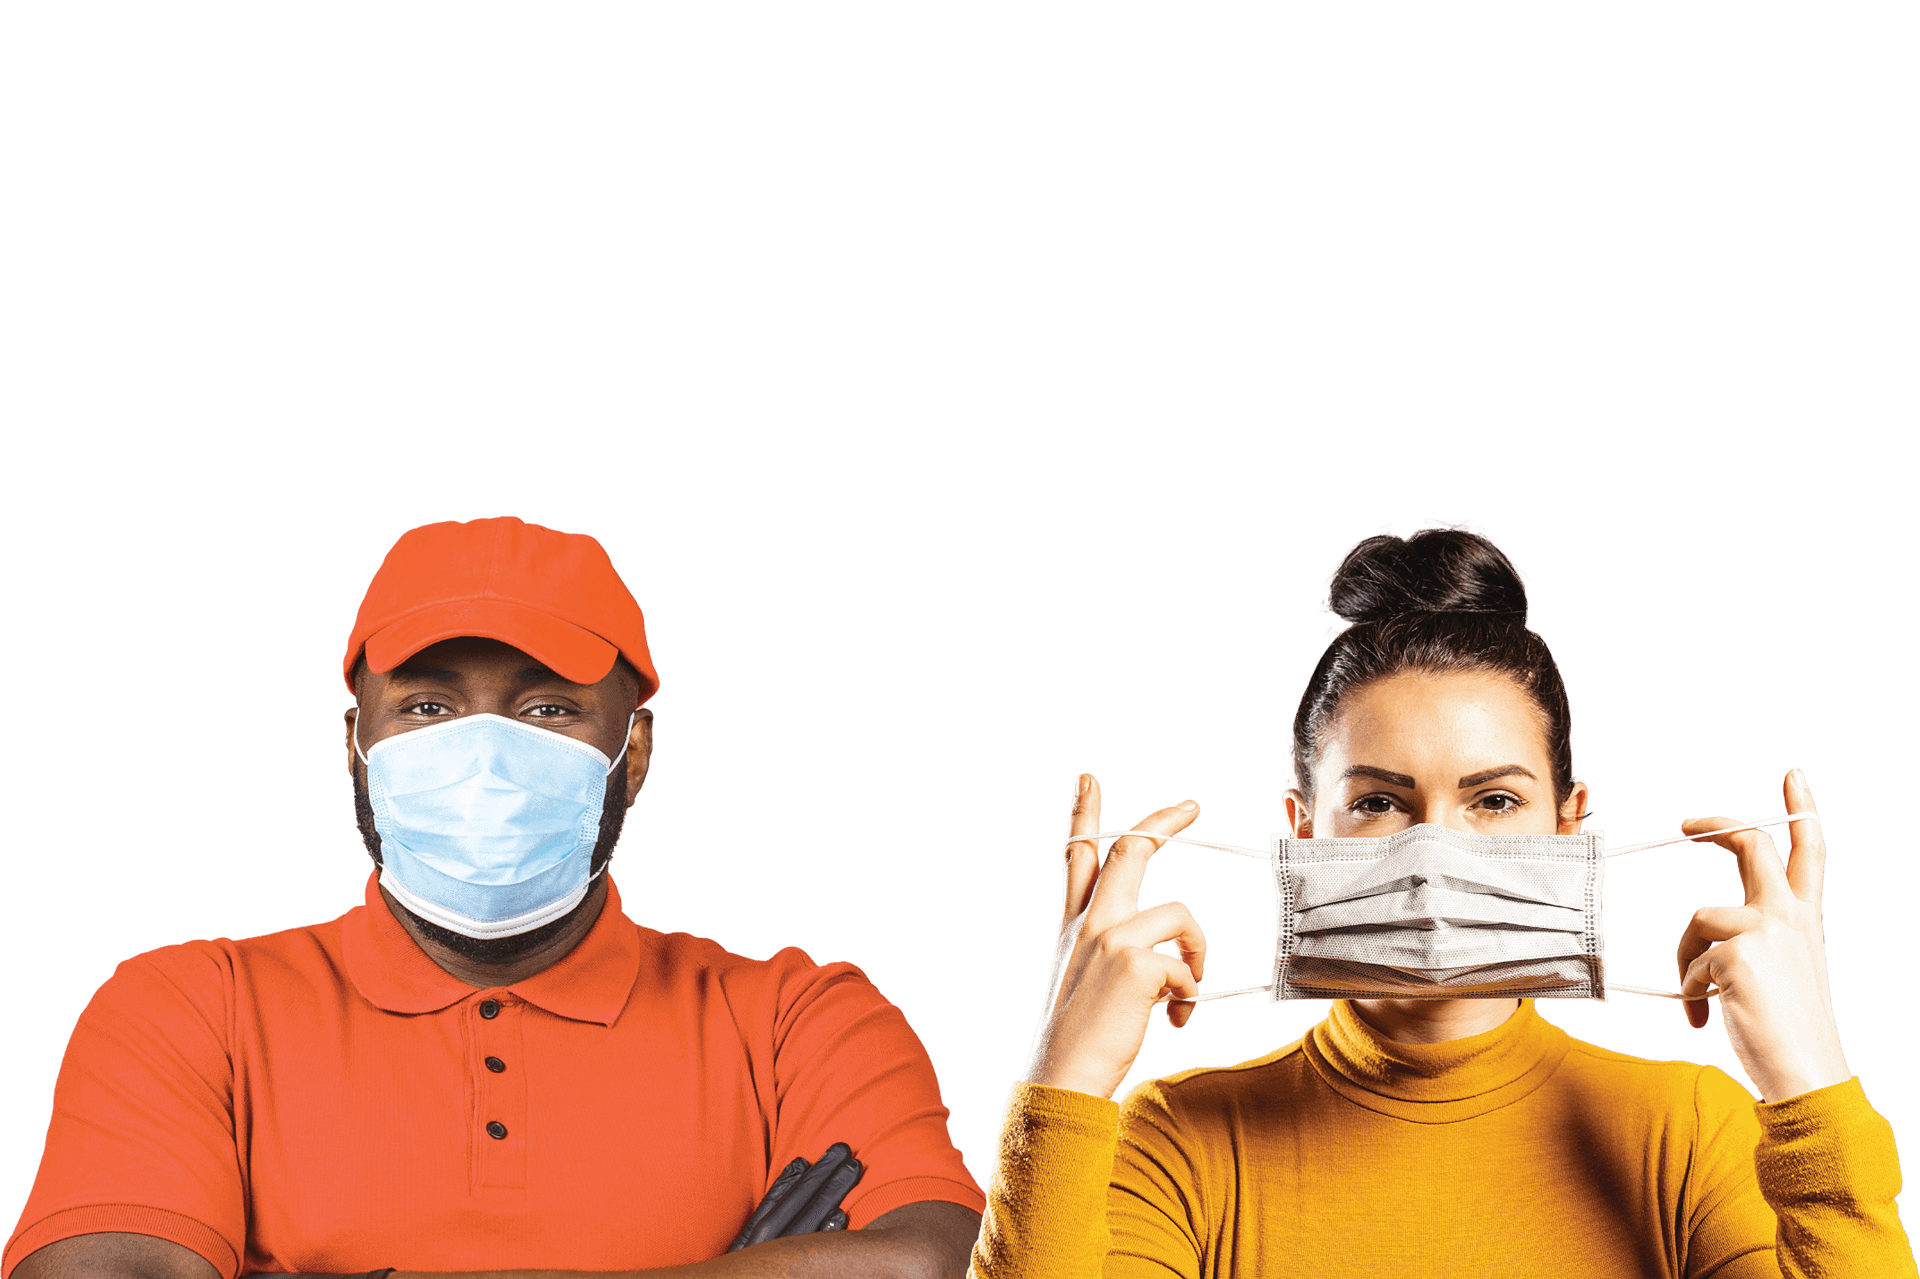 Image of two people wearing masks and bright shirts